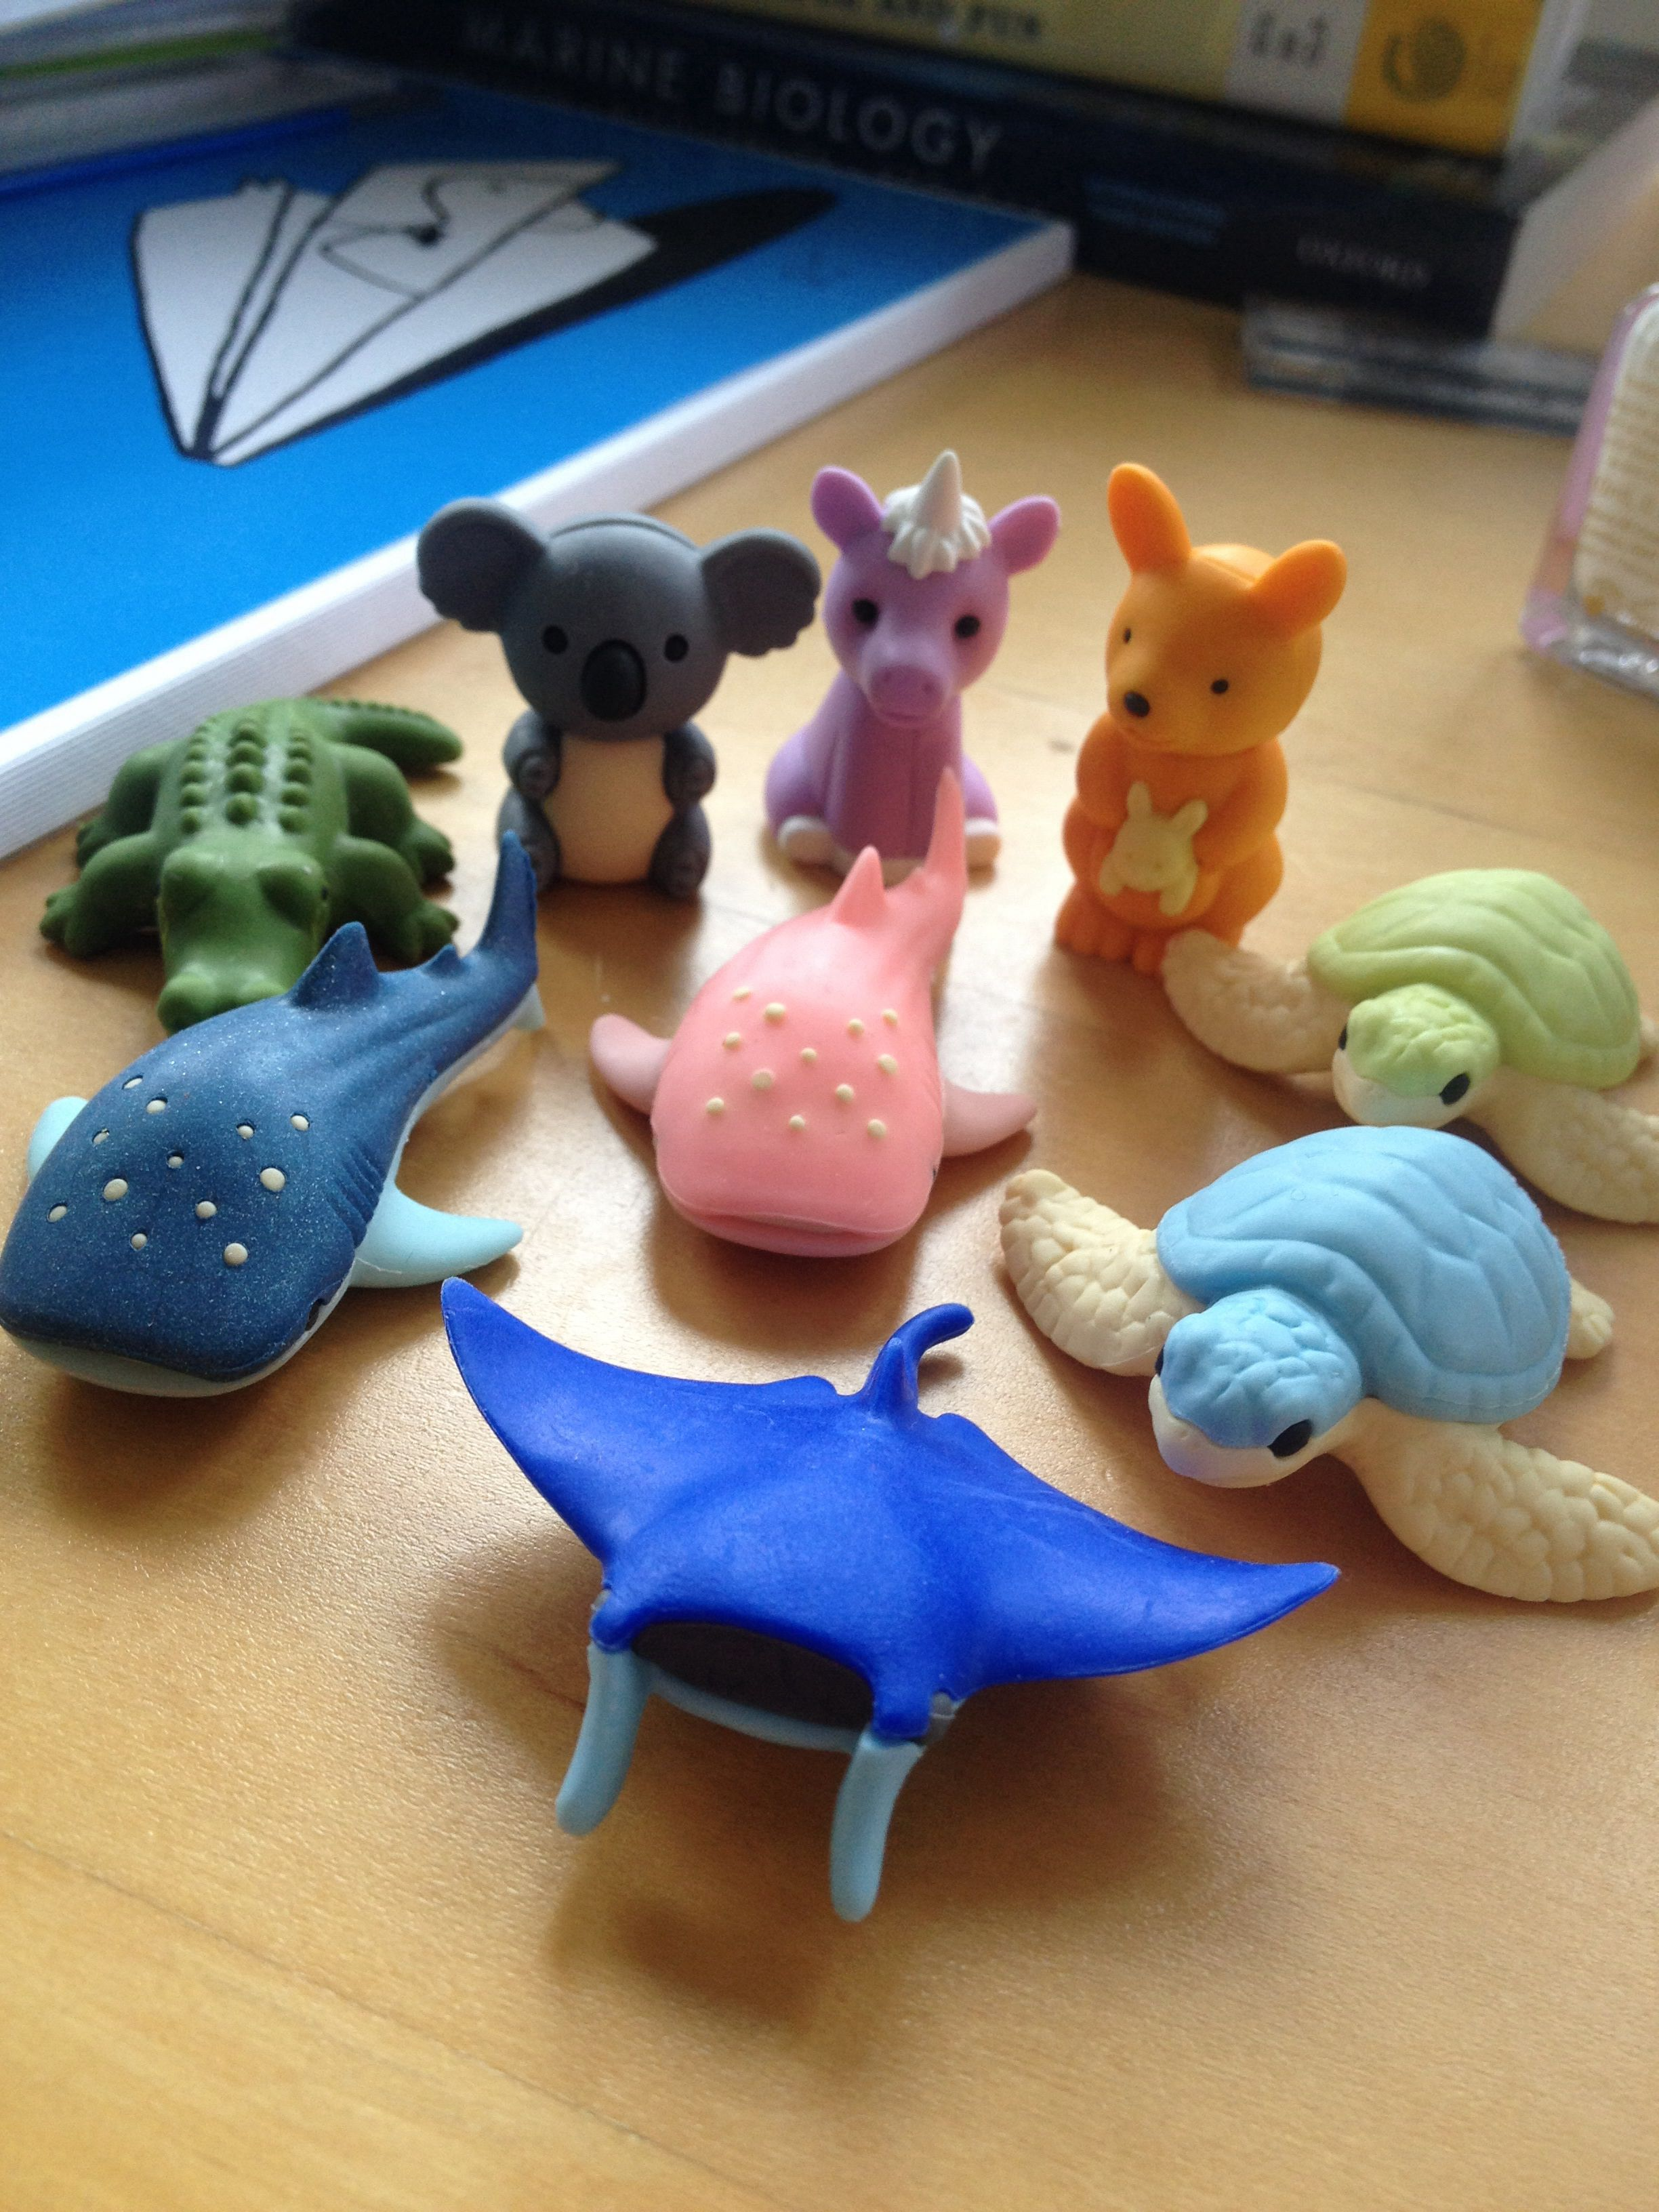 The cutest rubbers ever.